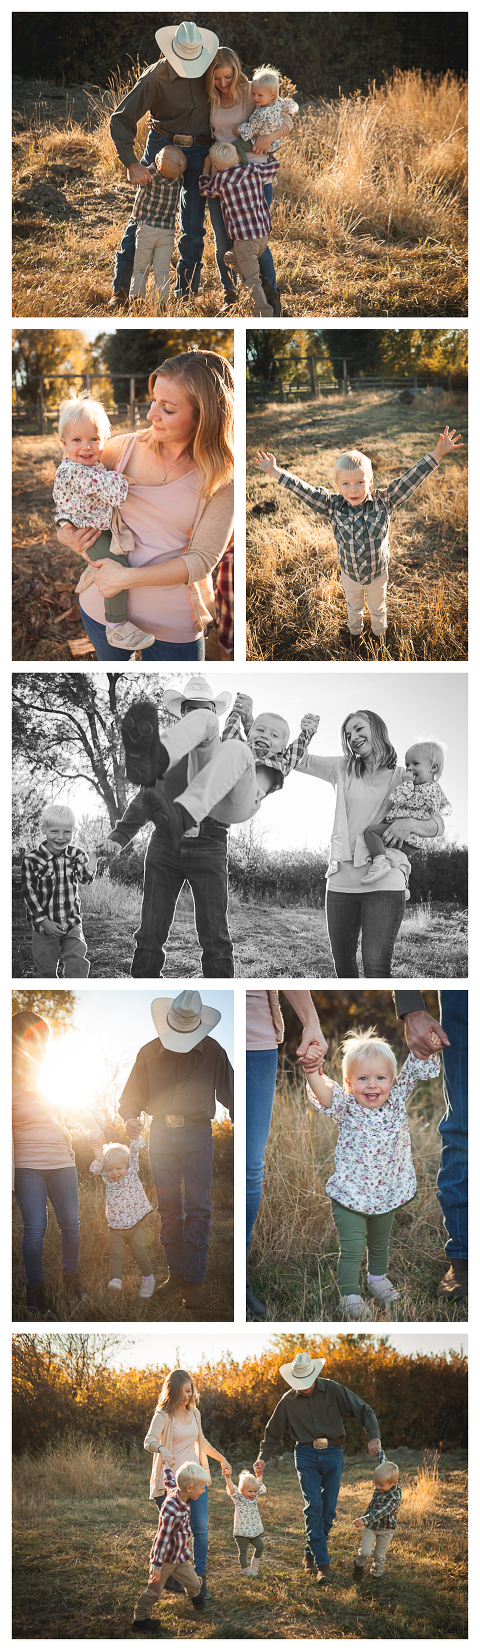 Connelly Lifestyle Family Session by Hailey Haberman 2018 in Ellensburg WA